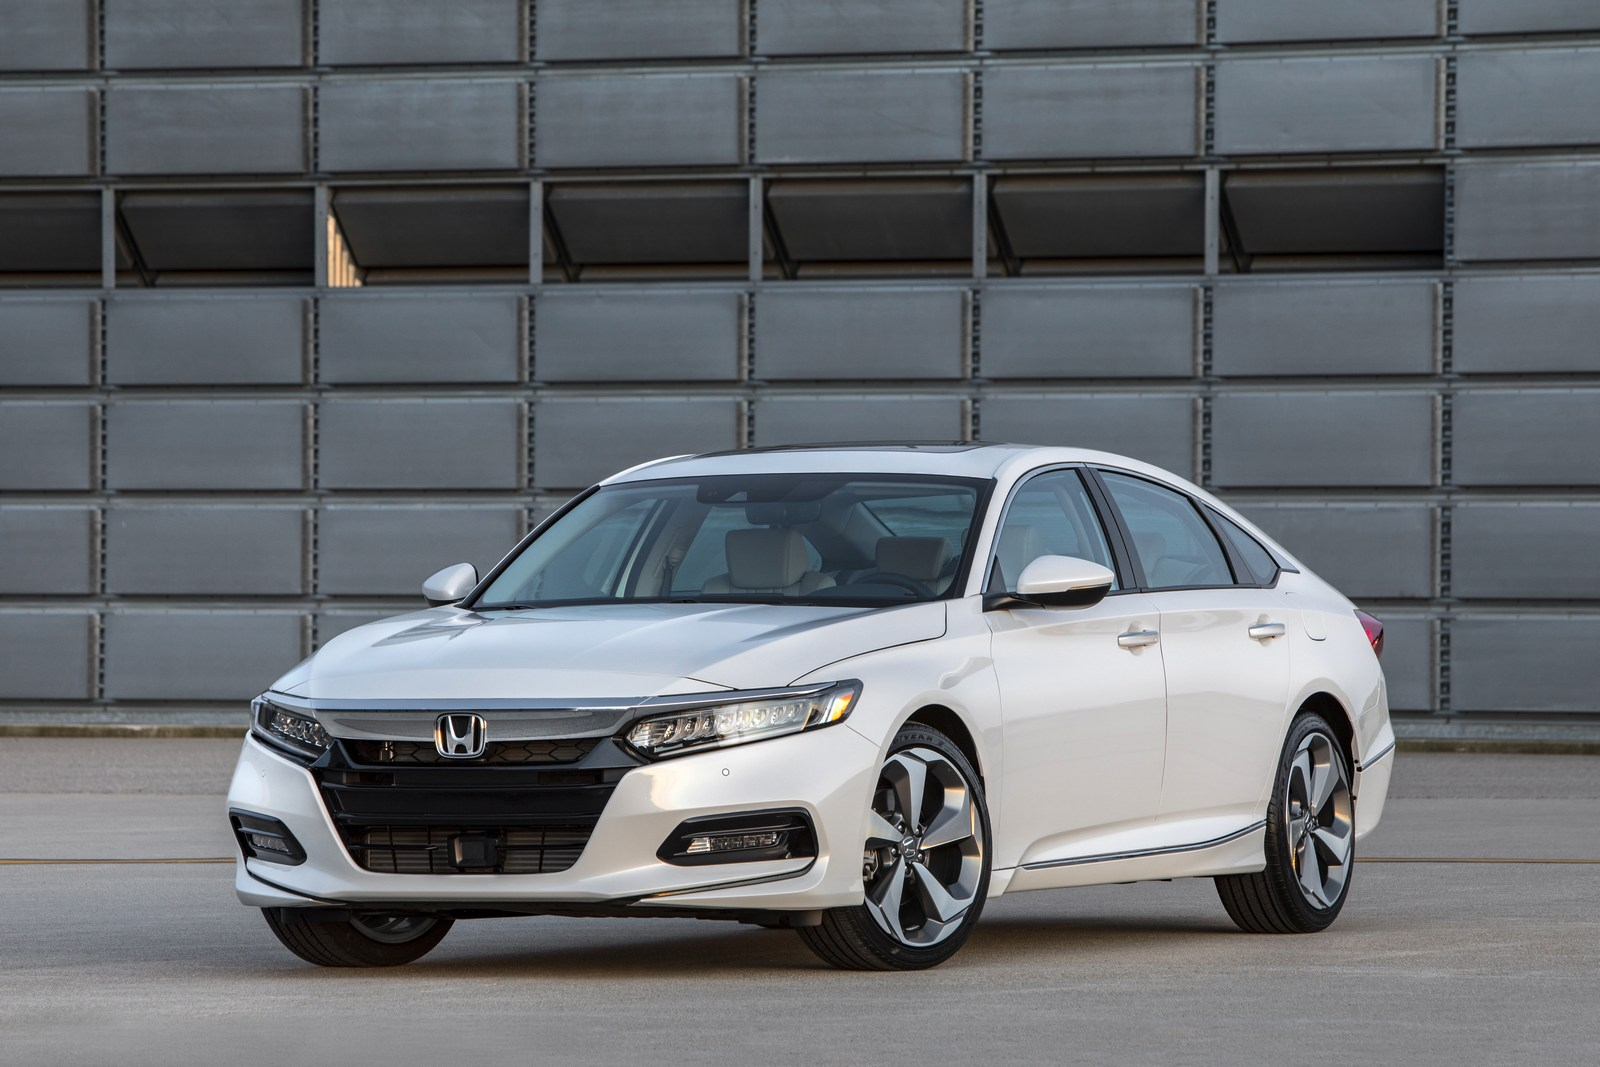 2018 Honda Accord Hybrid Fuel Economy EPA-rated At 47 MPG ...